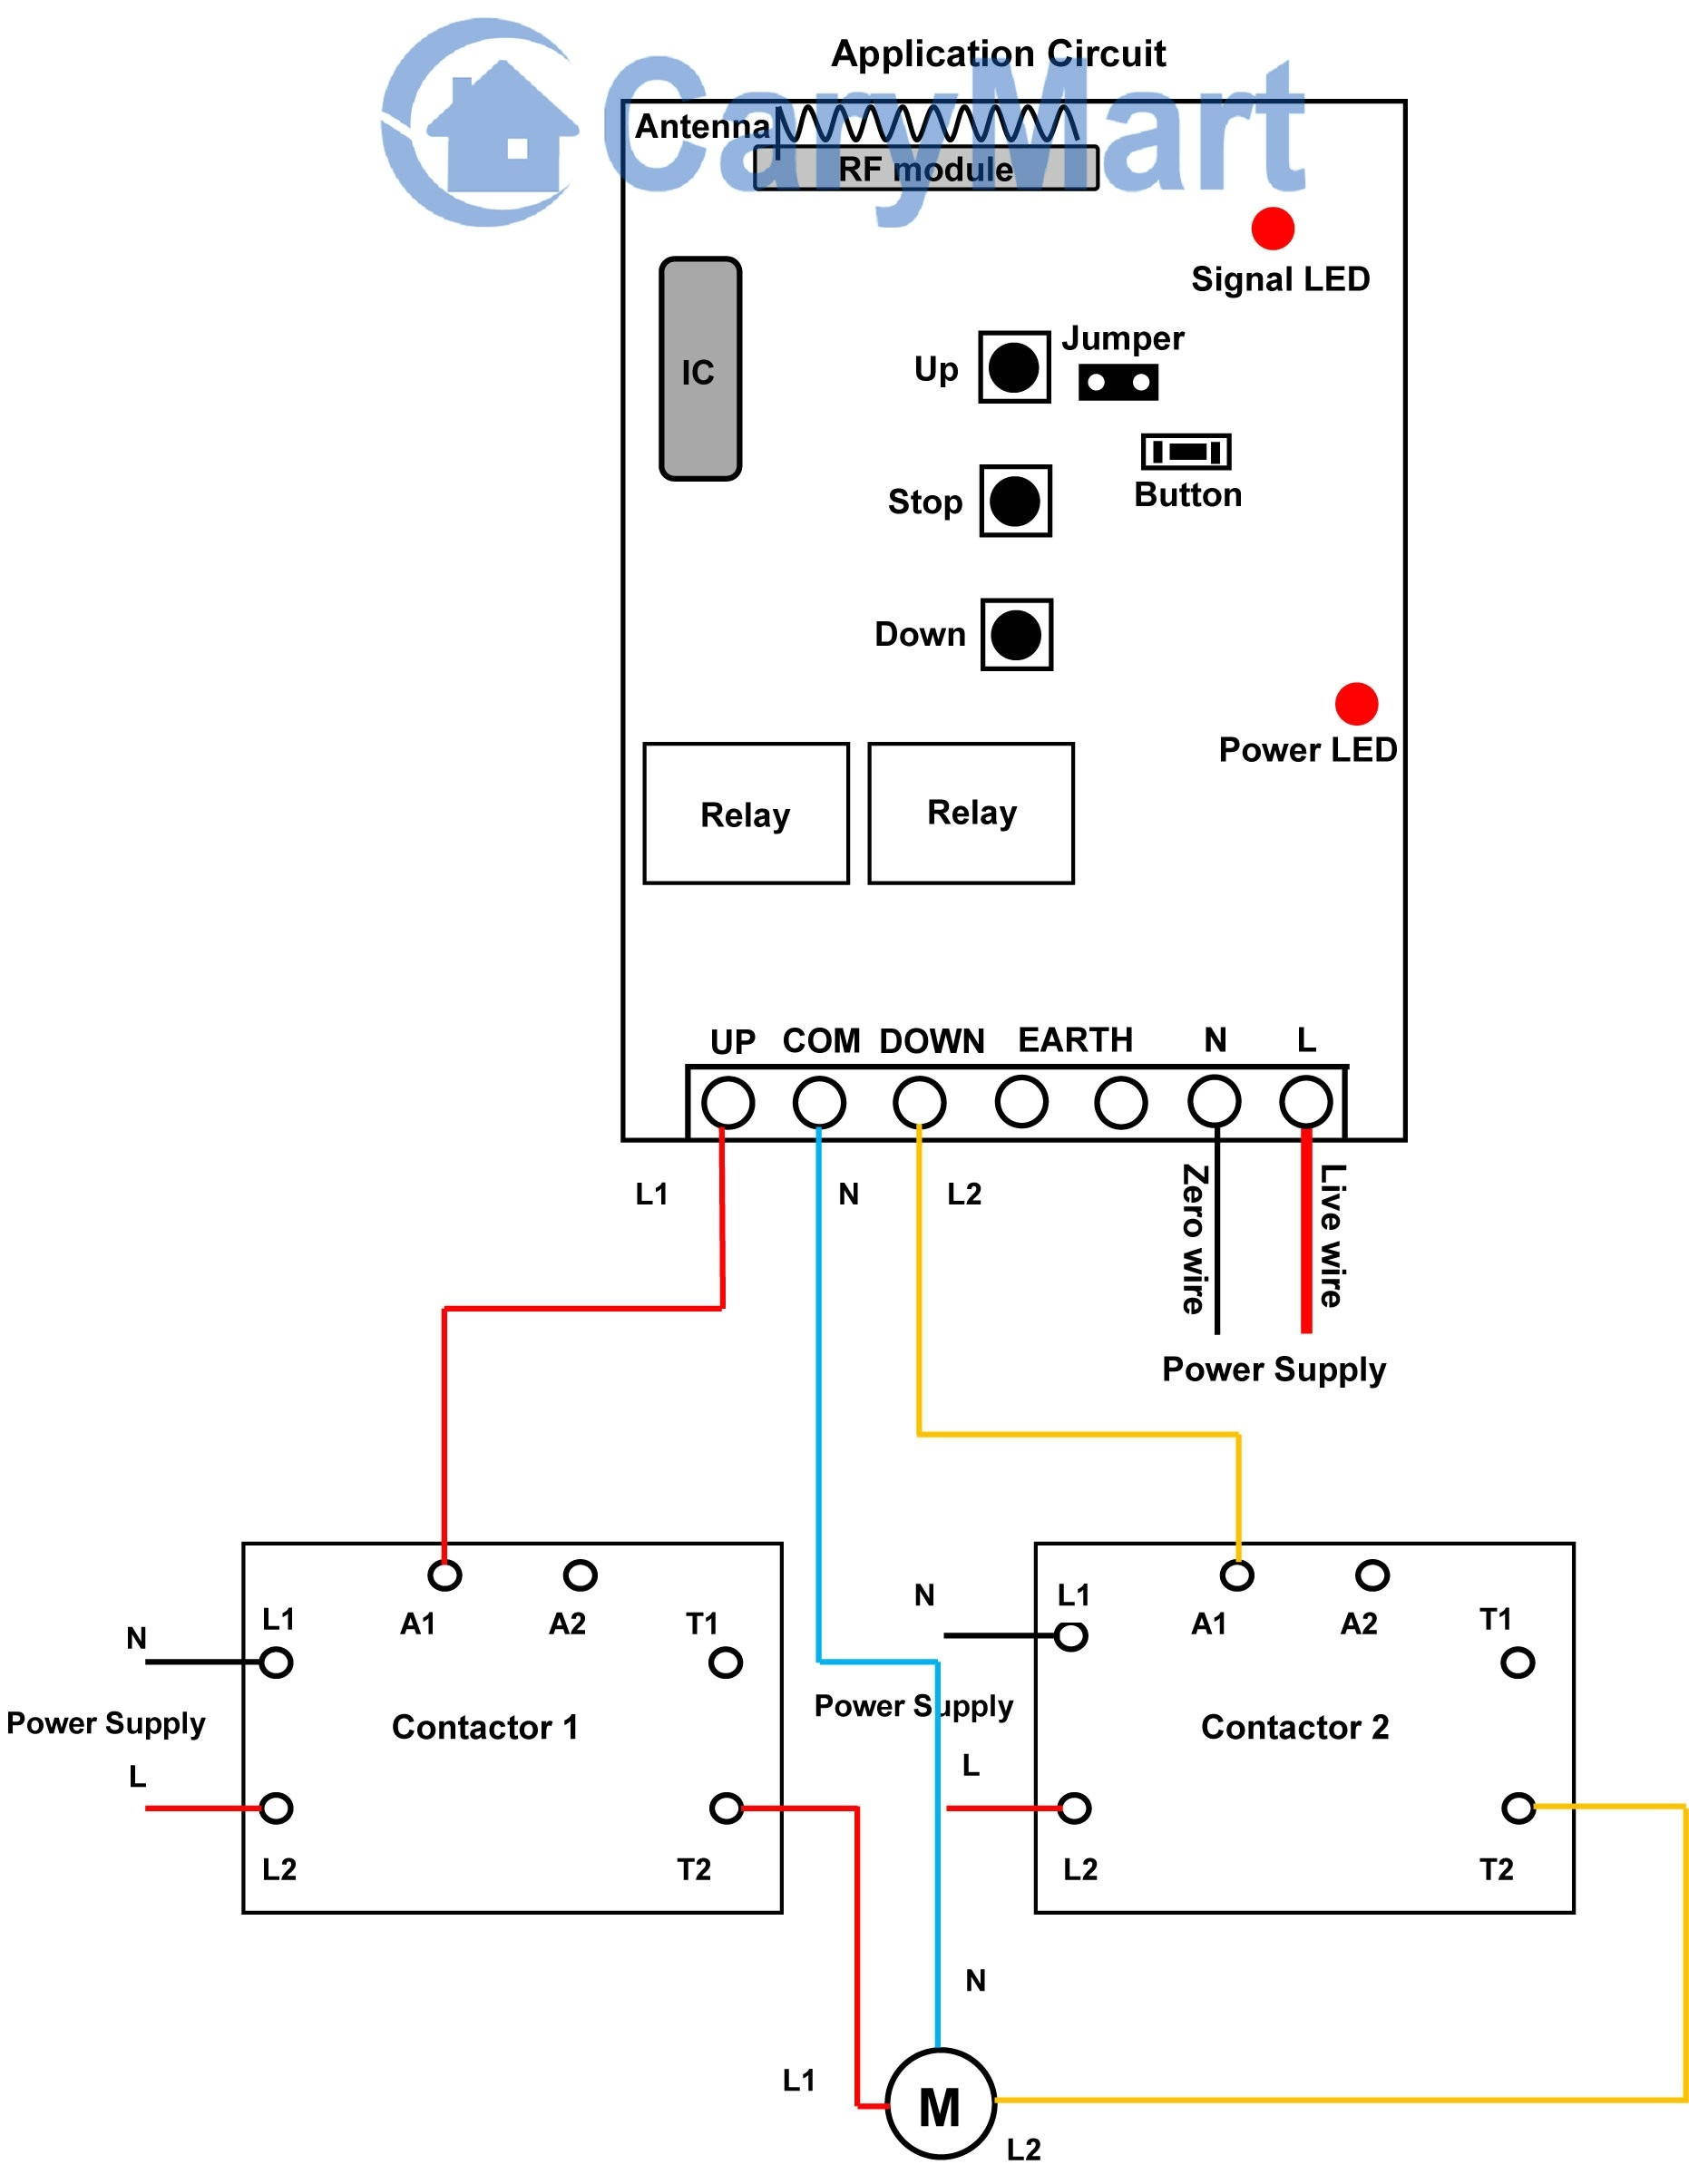 contactor wiring diagram a1 a2 Download-Circuit Diagram Contactor Best Motor Reversing Contactor Wiring 16-j